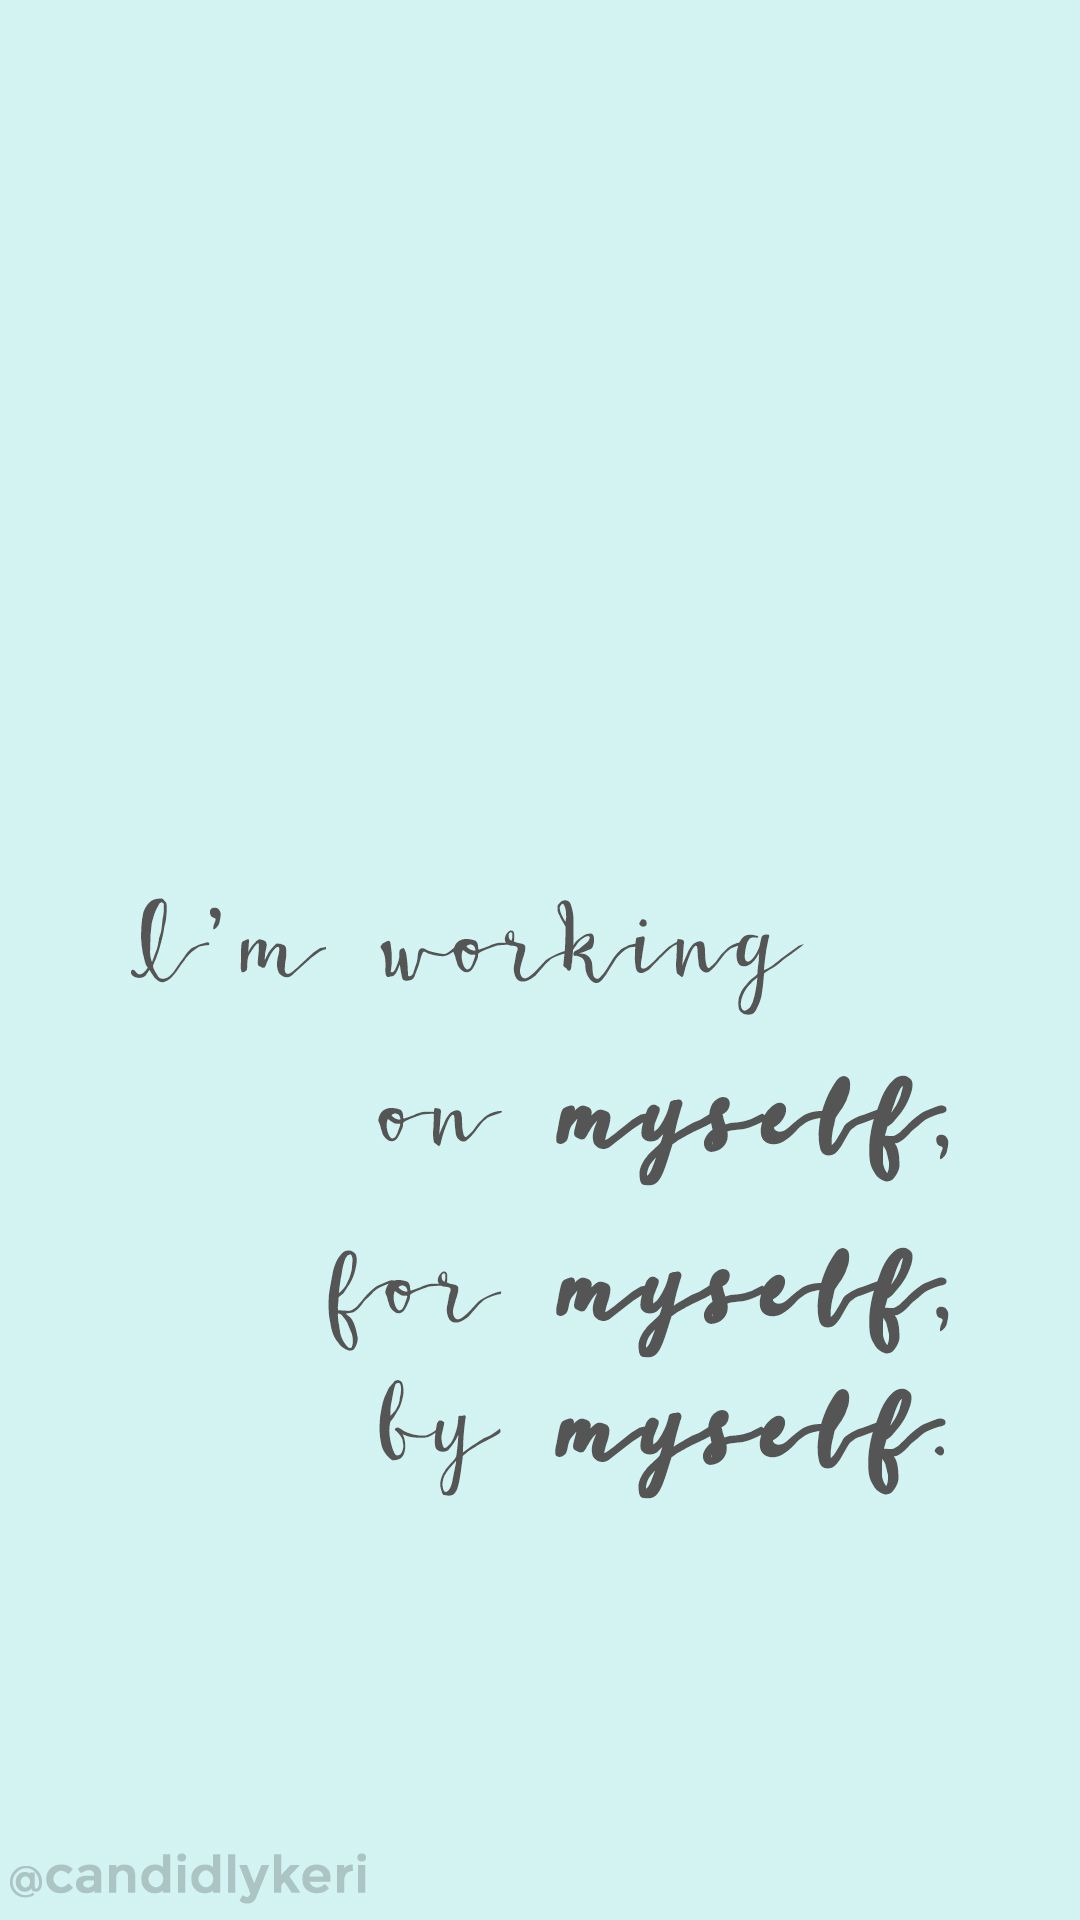 im working on myself by myself for myself motivation inspirational quote wallpaper